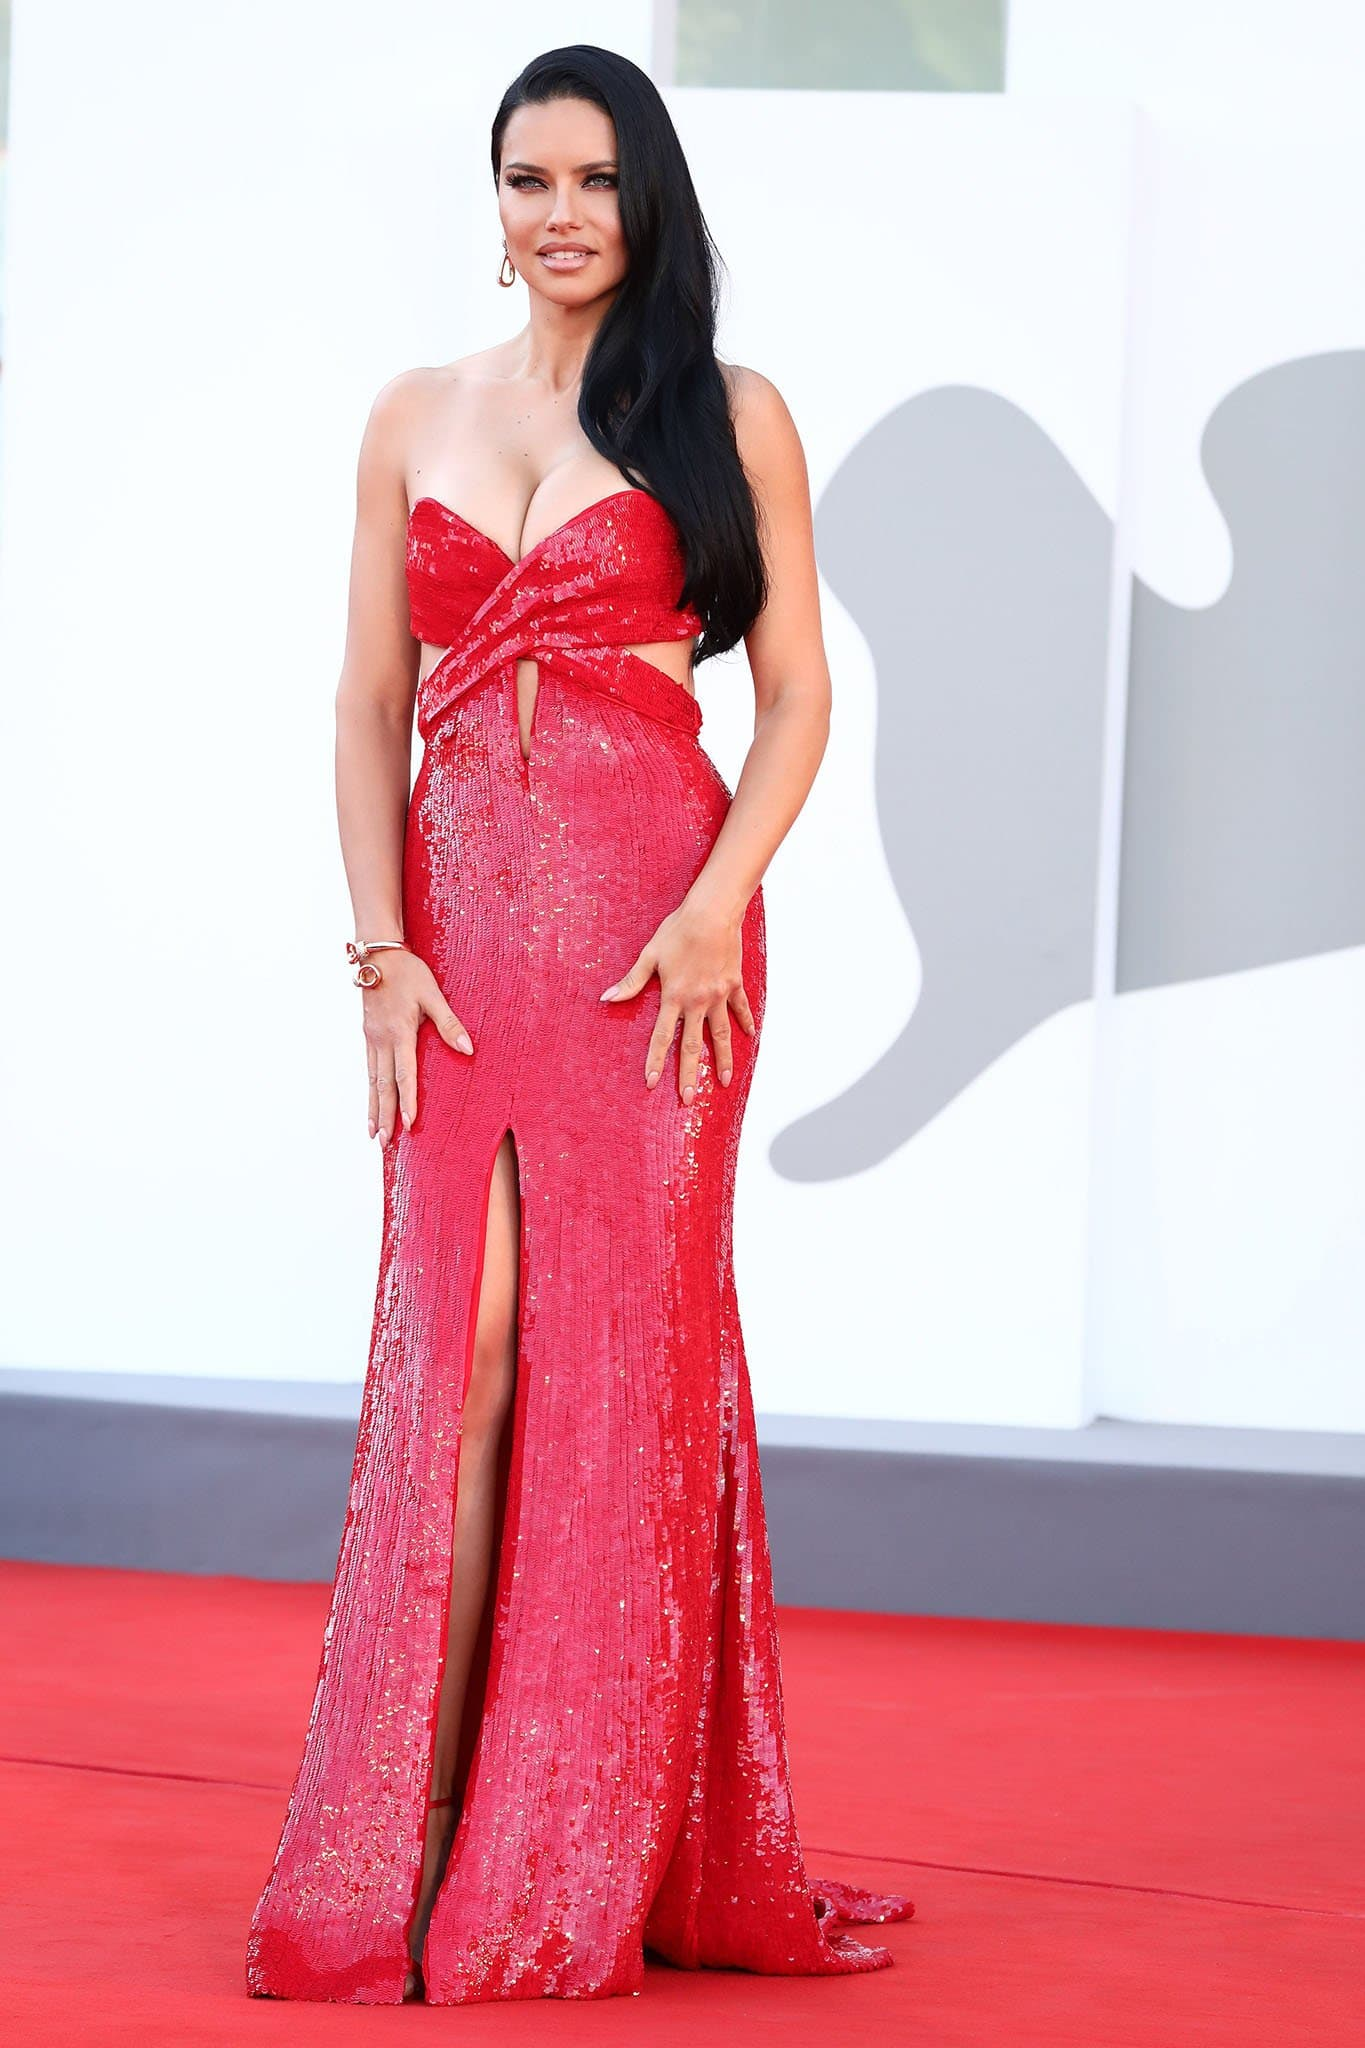 Adriana Lima's Etro gown features sultry flesh-baring cutouts and a thigh-high slit